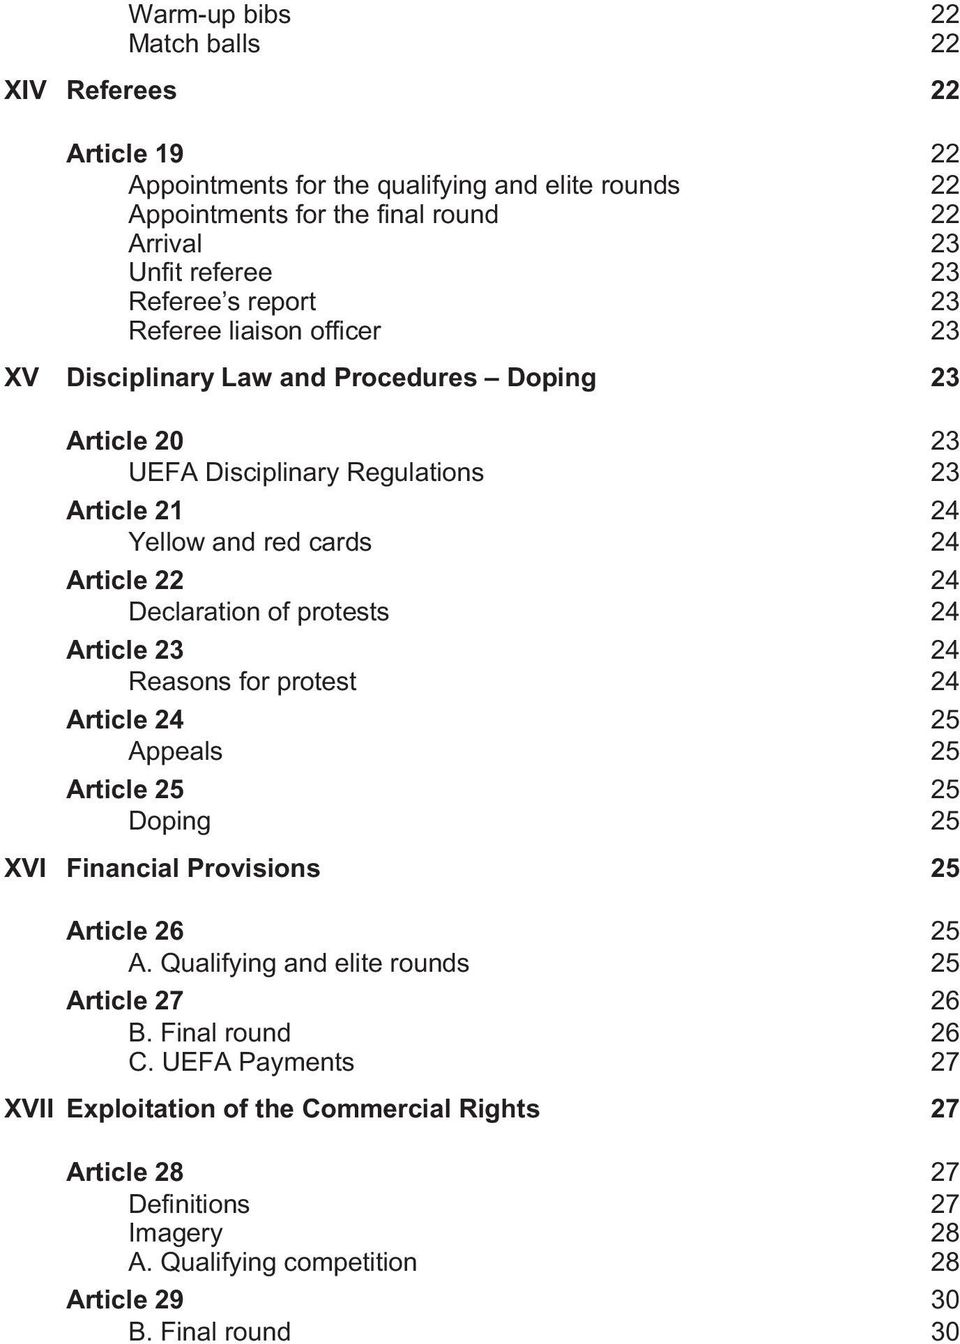 Declaration of protests 24 24 Article 23 Reasons for protest 24 24 Article 24 Appeals 25 25 Article 25 Doping 25 25 XVI Financial Provisions 25 Article 26 25 A.